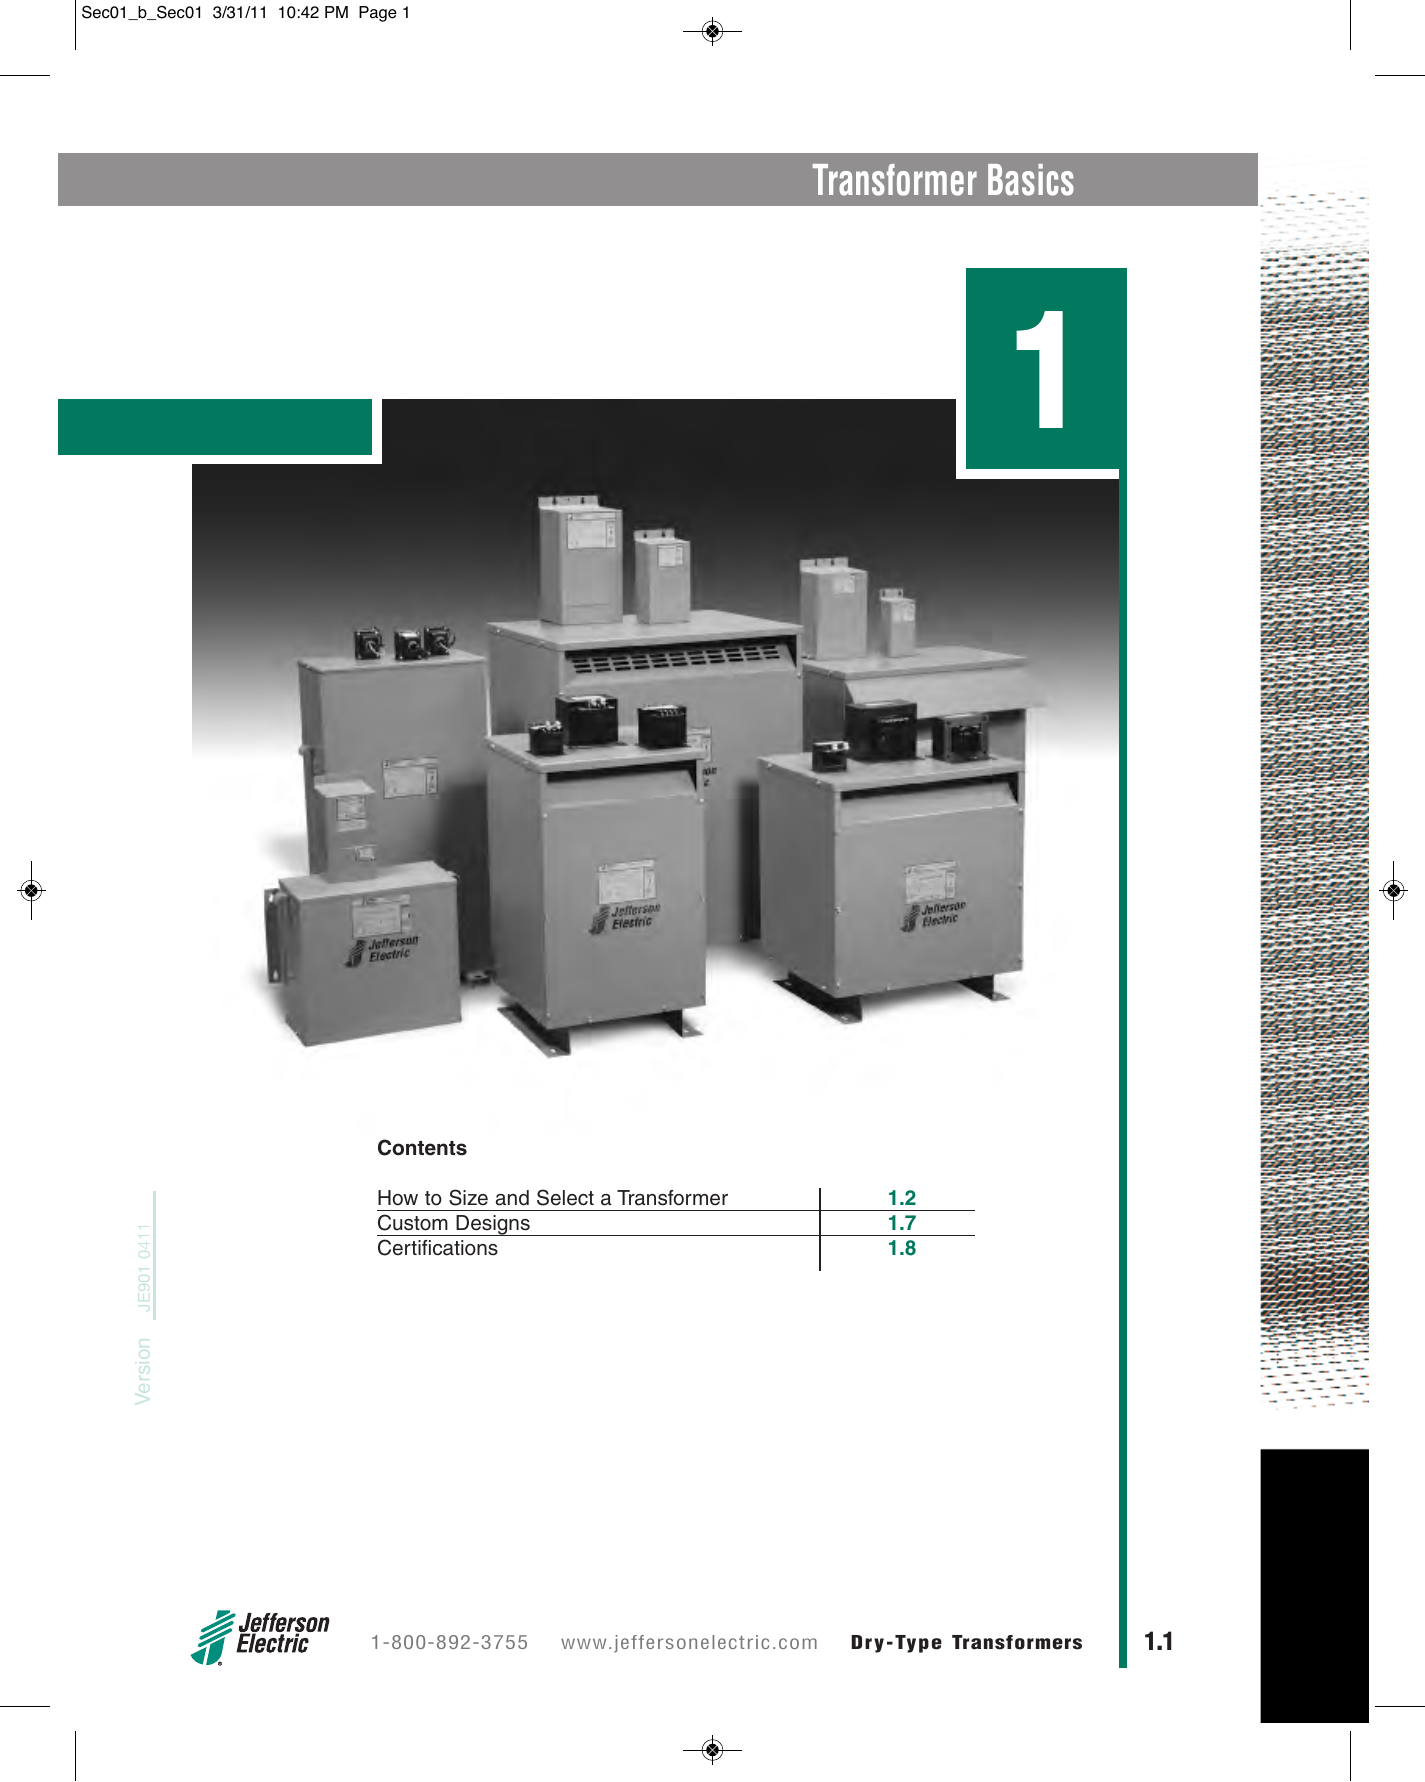 Transformer wiring diagram single phase 250 free download transformer basics jefferson electric transformer wiring diagram single phase 250 44 transformer connection for dummies single phase to three phase pooptronica Choice Image